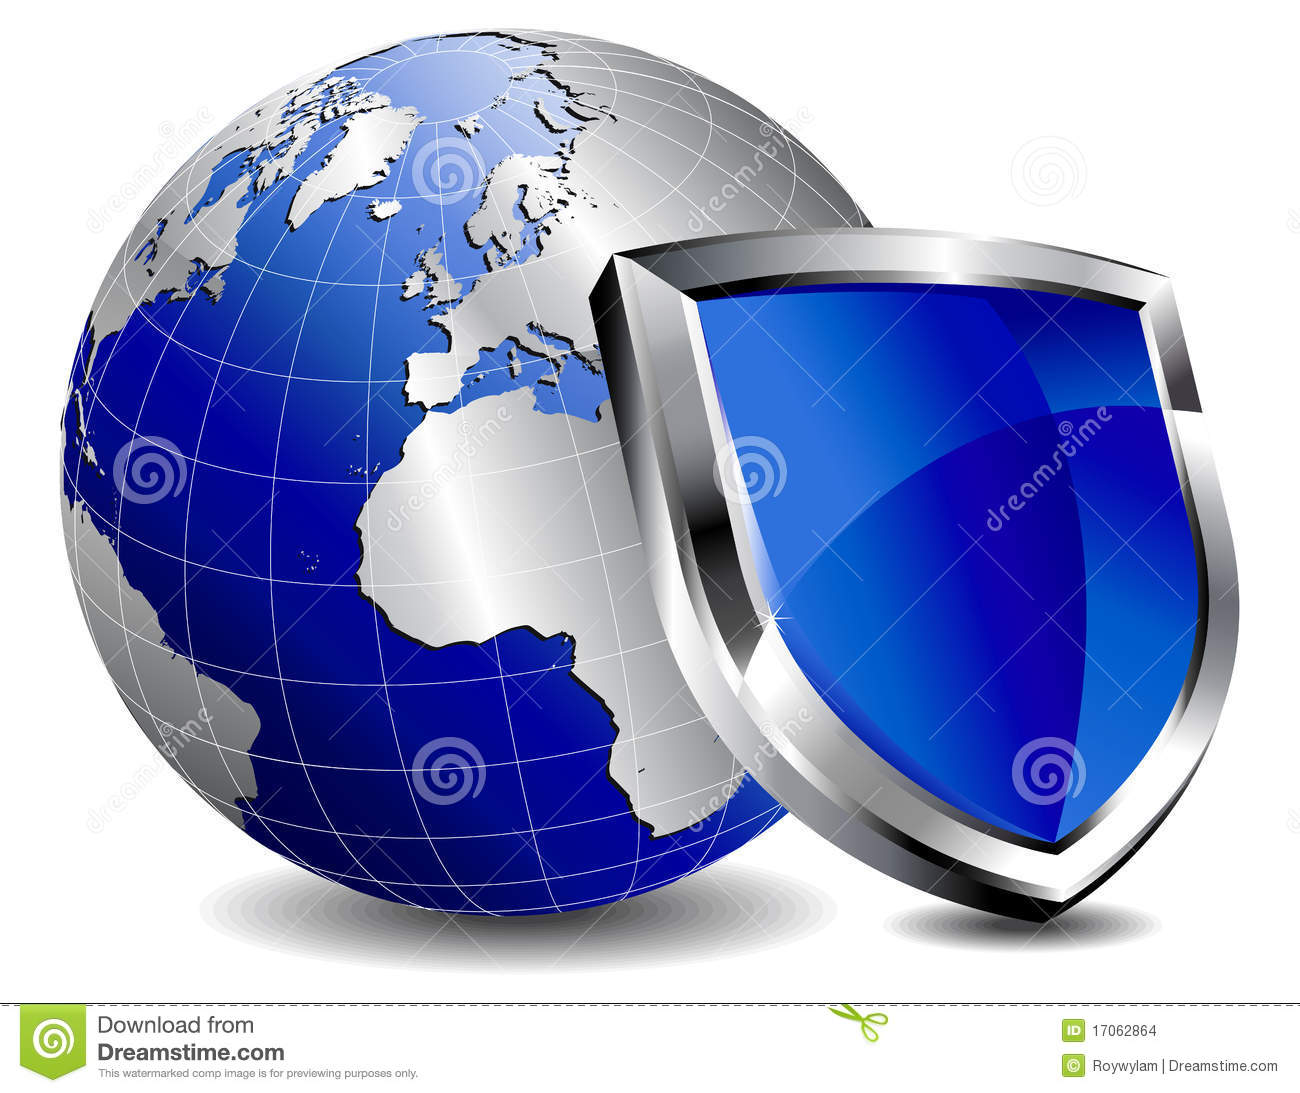 Protection Shield Firewall Stock Images - Image: 17062864